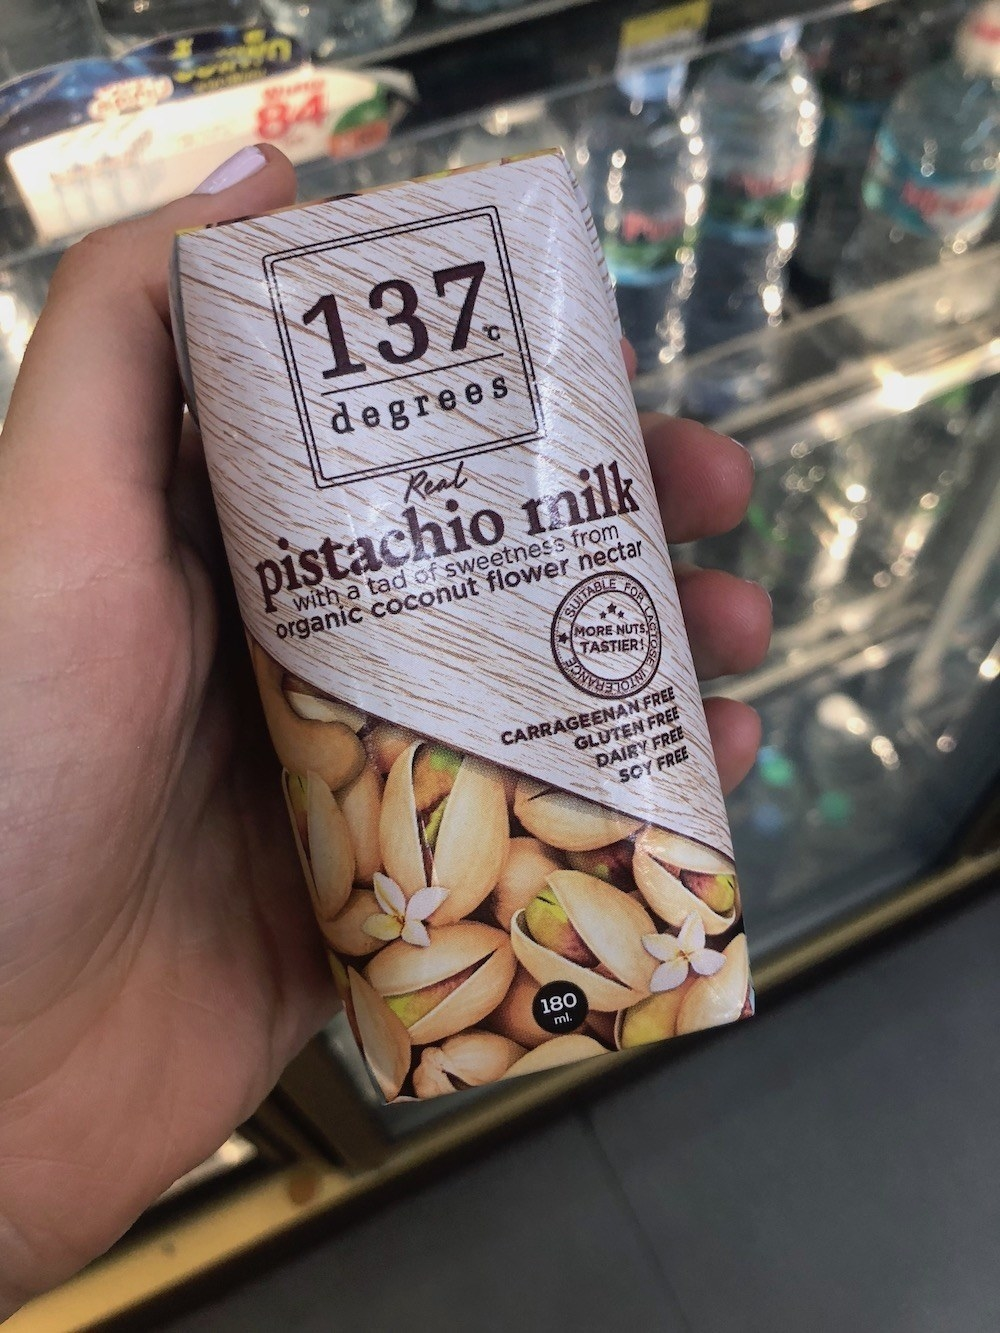 A small carton of milk made from pistachios